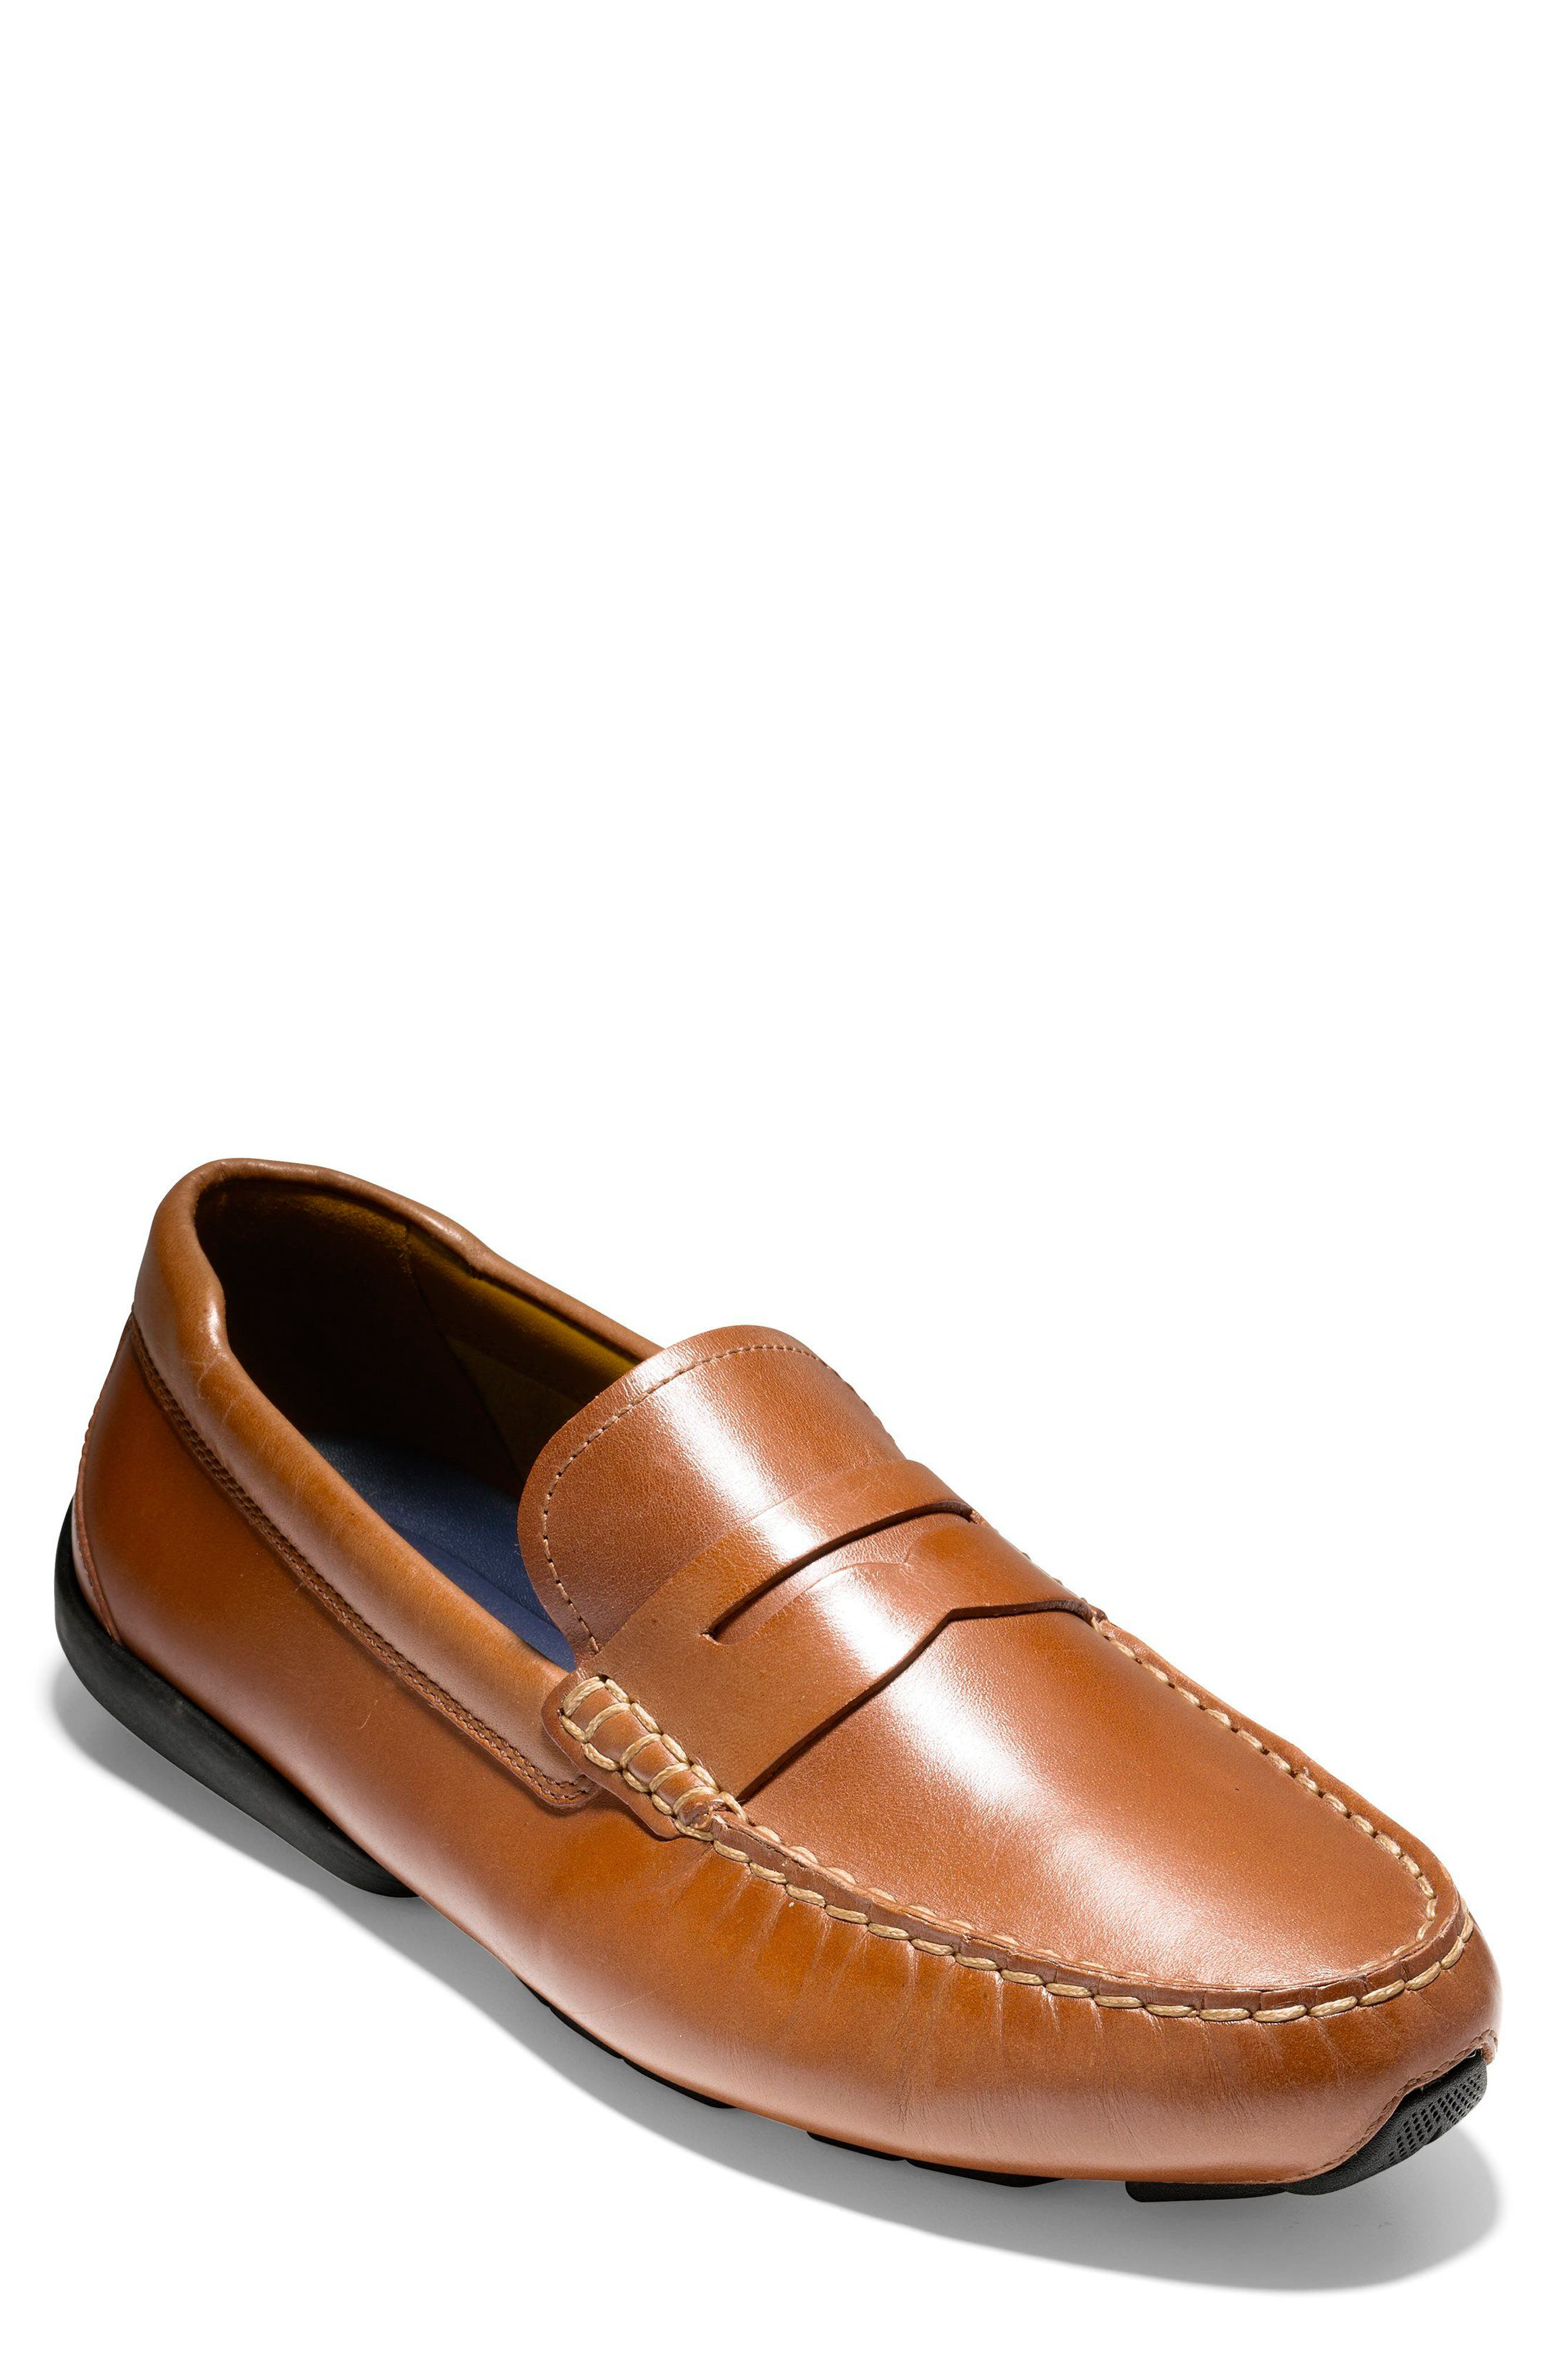 5825a26d0f2 Cole Haan Branson Penny Driver In British Tan Leather